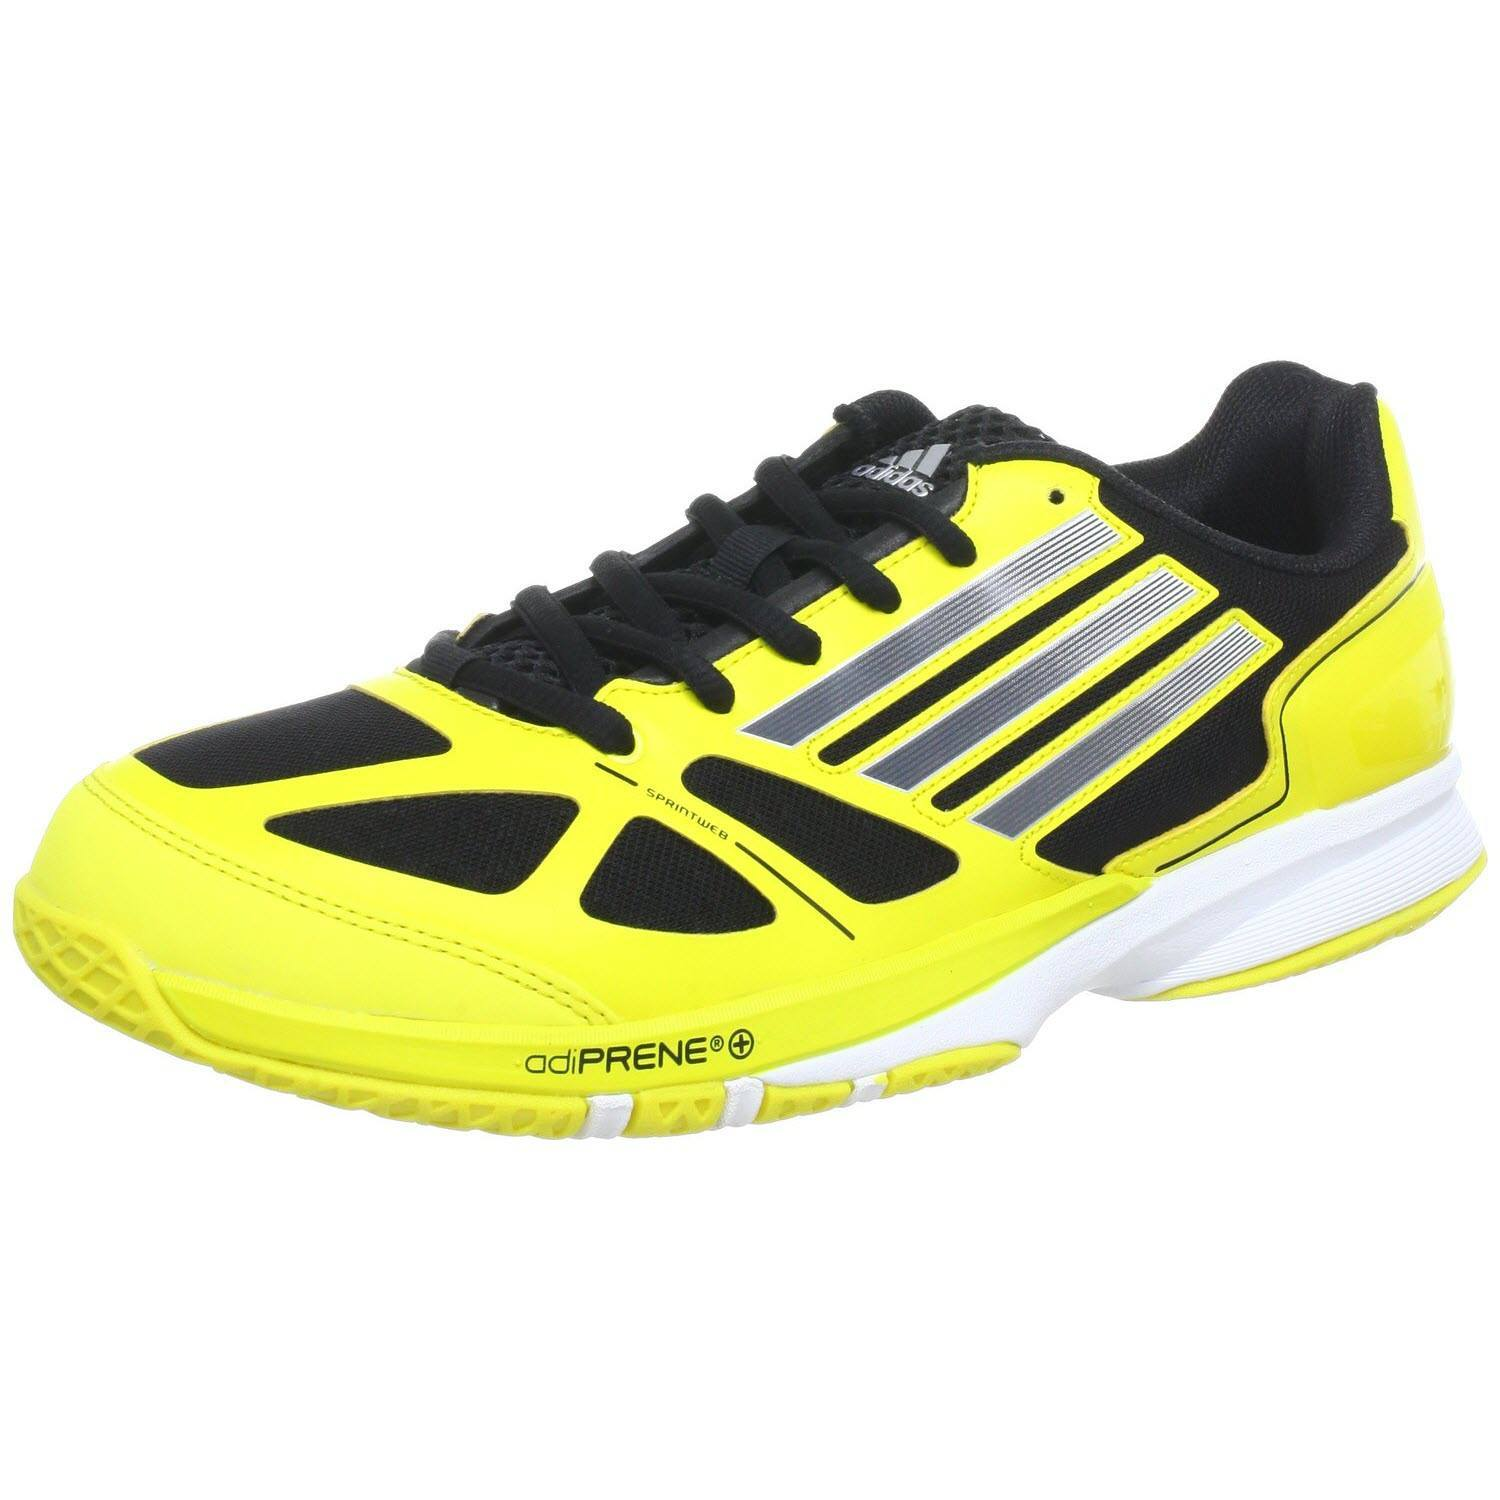 adidas-adizero-prime-men-yellow-black